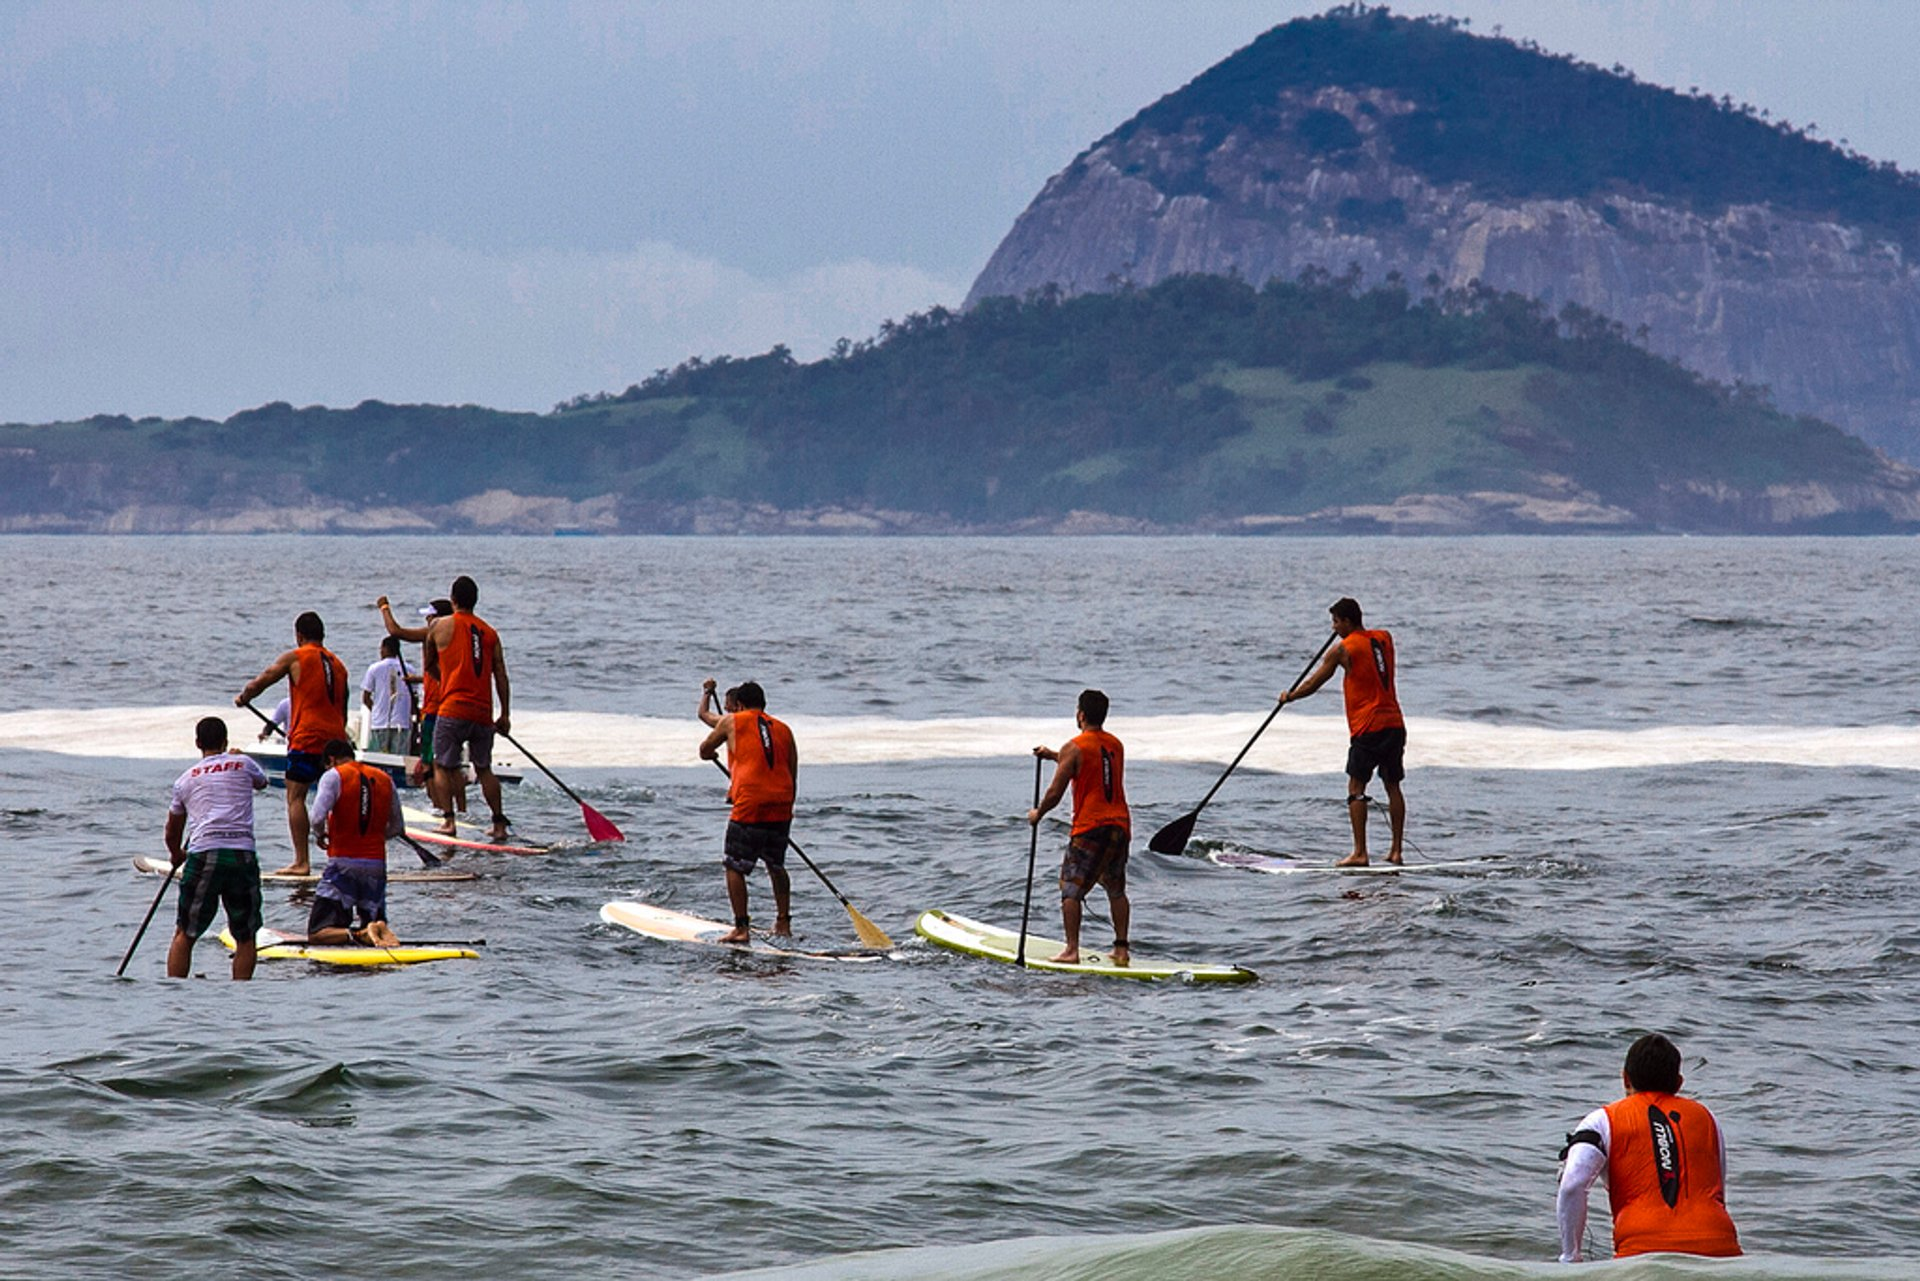 Stand Up Paddle Boarding in Rio de Janeiro - Best Season 2020